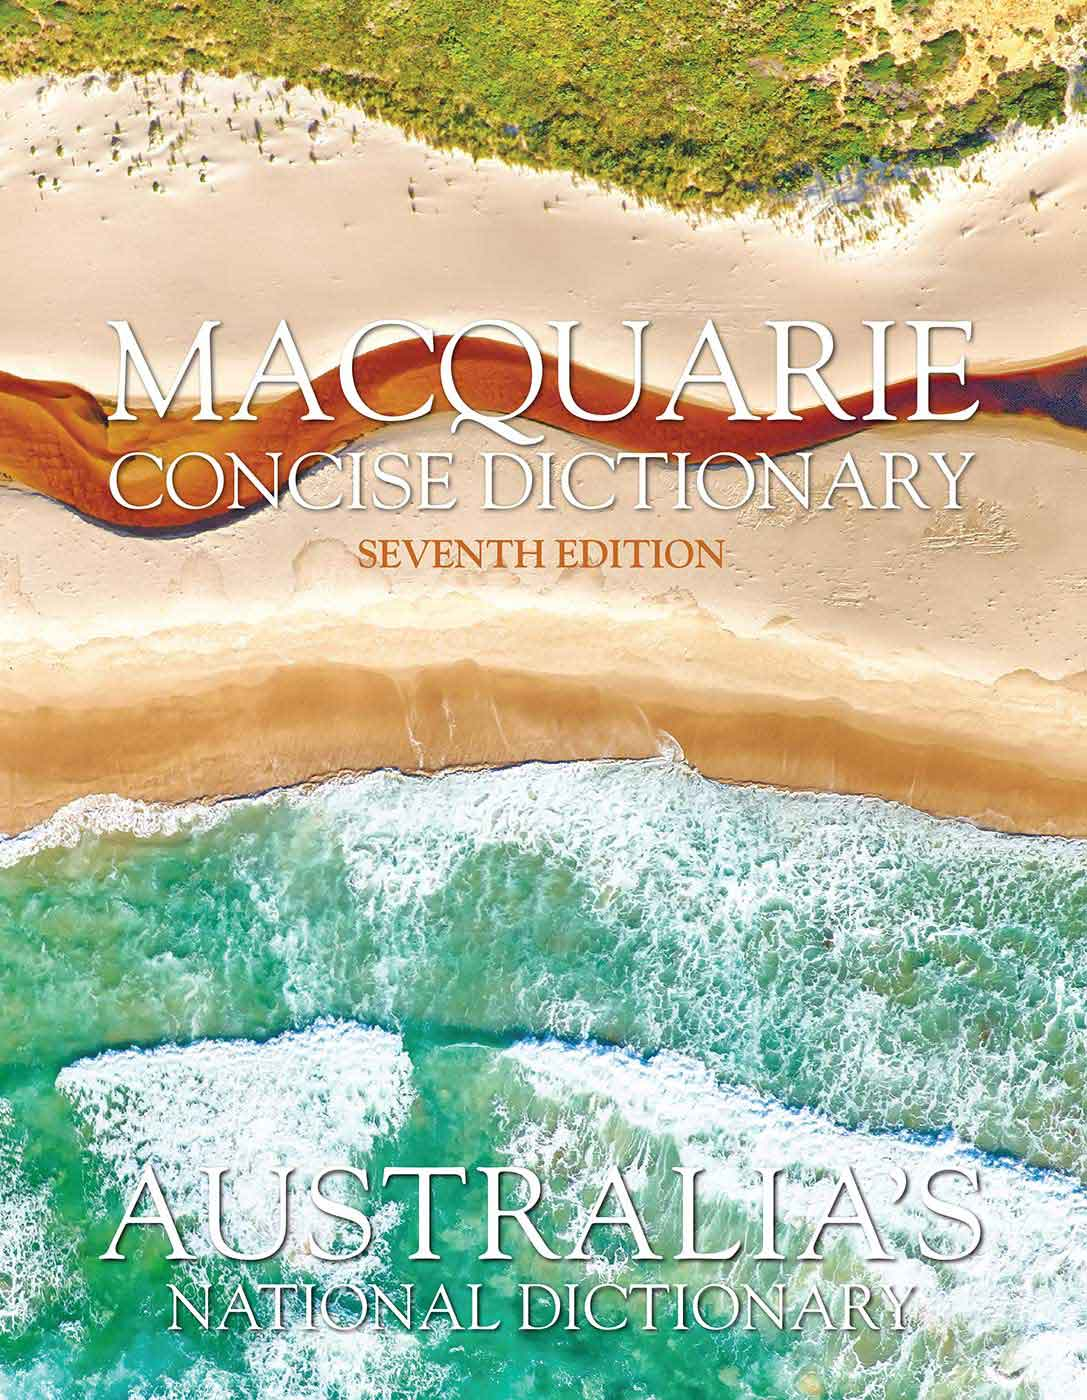 the cover of a Macquarie dictionary, seventh edition - click to view larger image